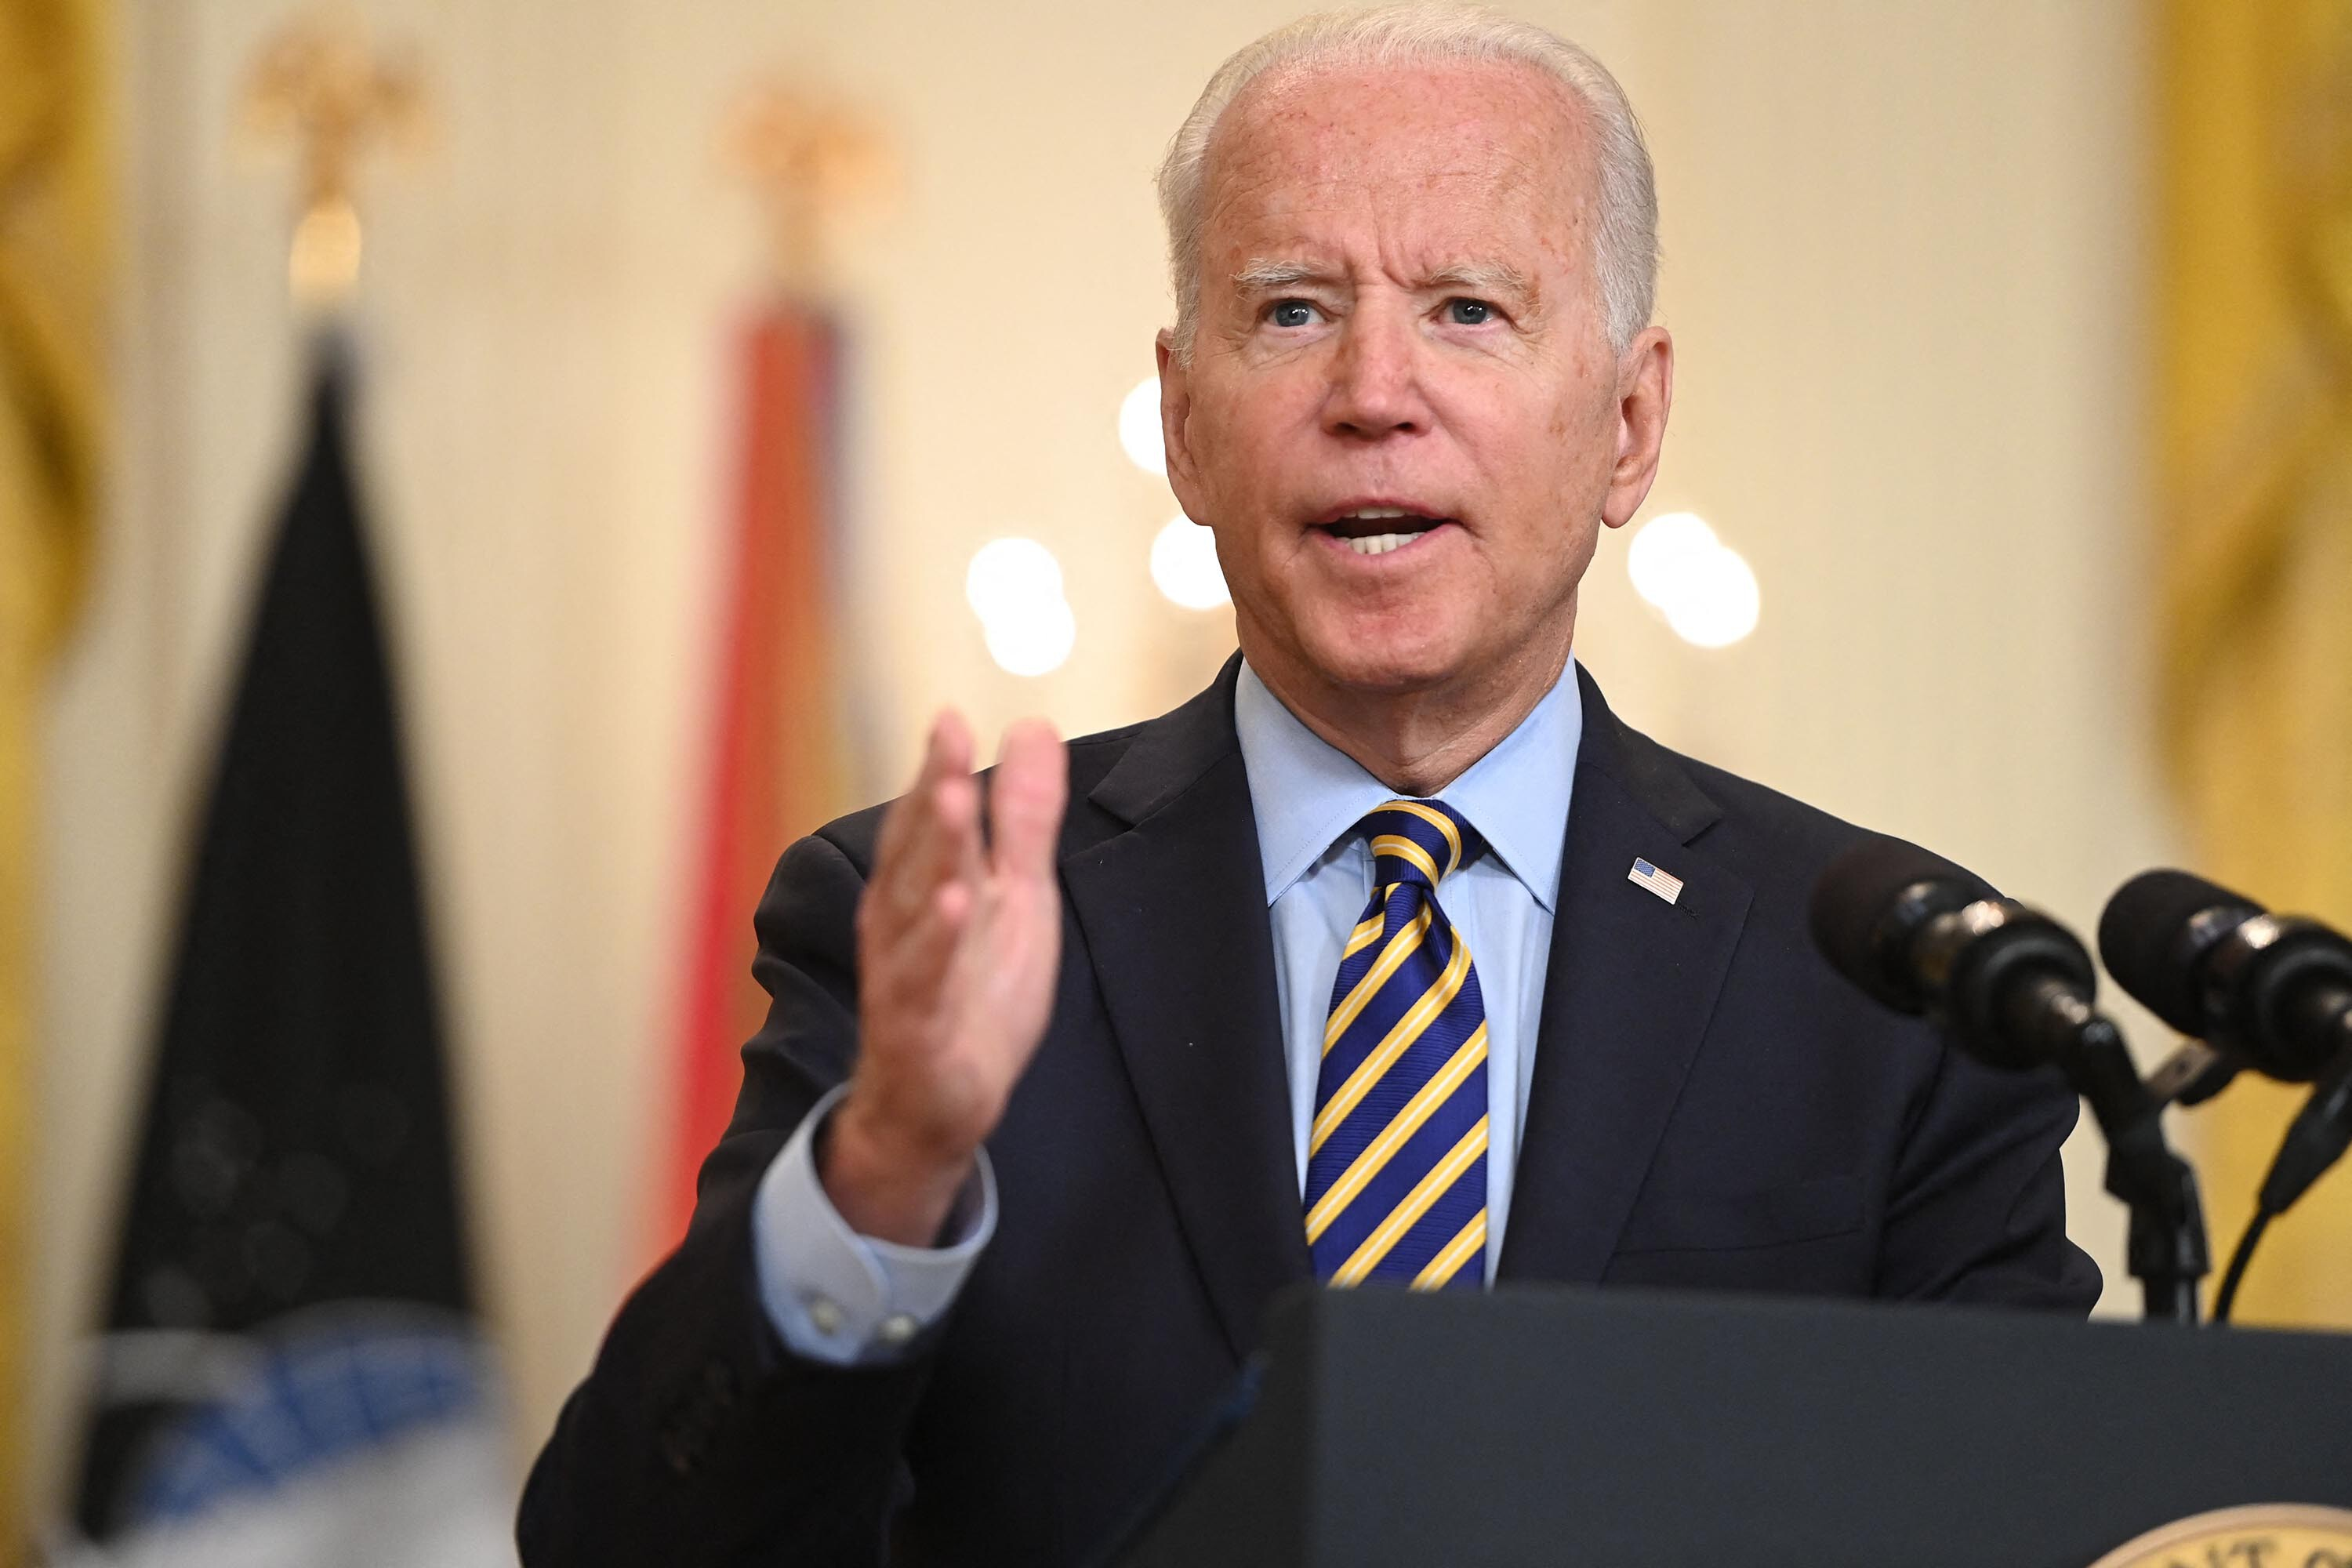 Fact check: Biden's dubious claim that 'the law doesn't allow' Afghan translators to be evacuated to US while they wait for visas